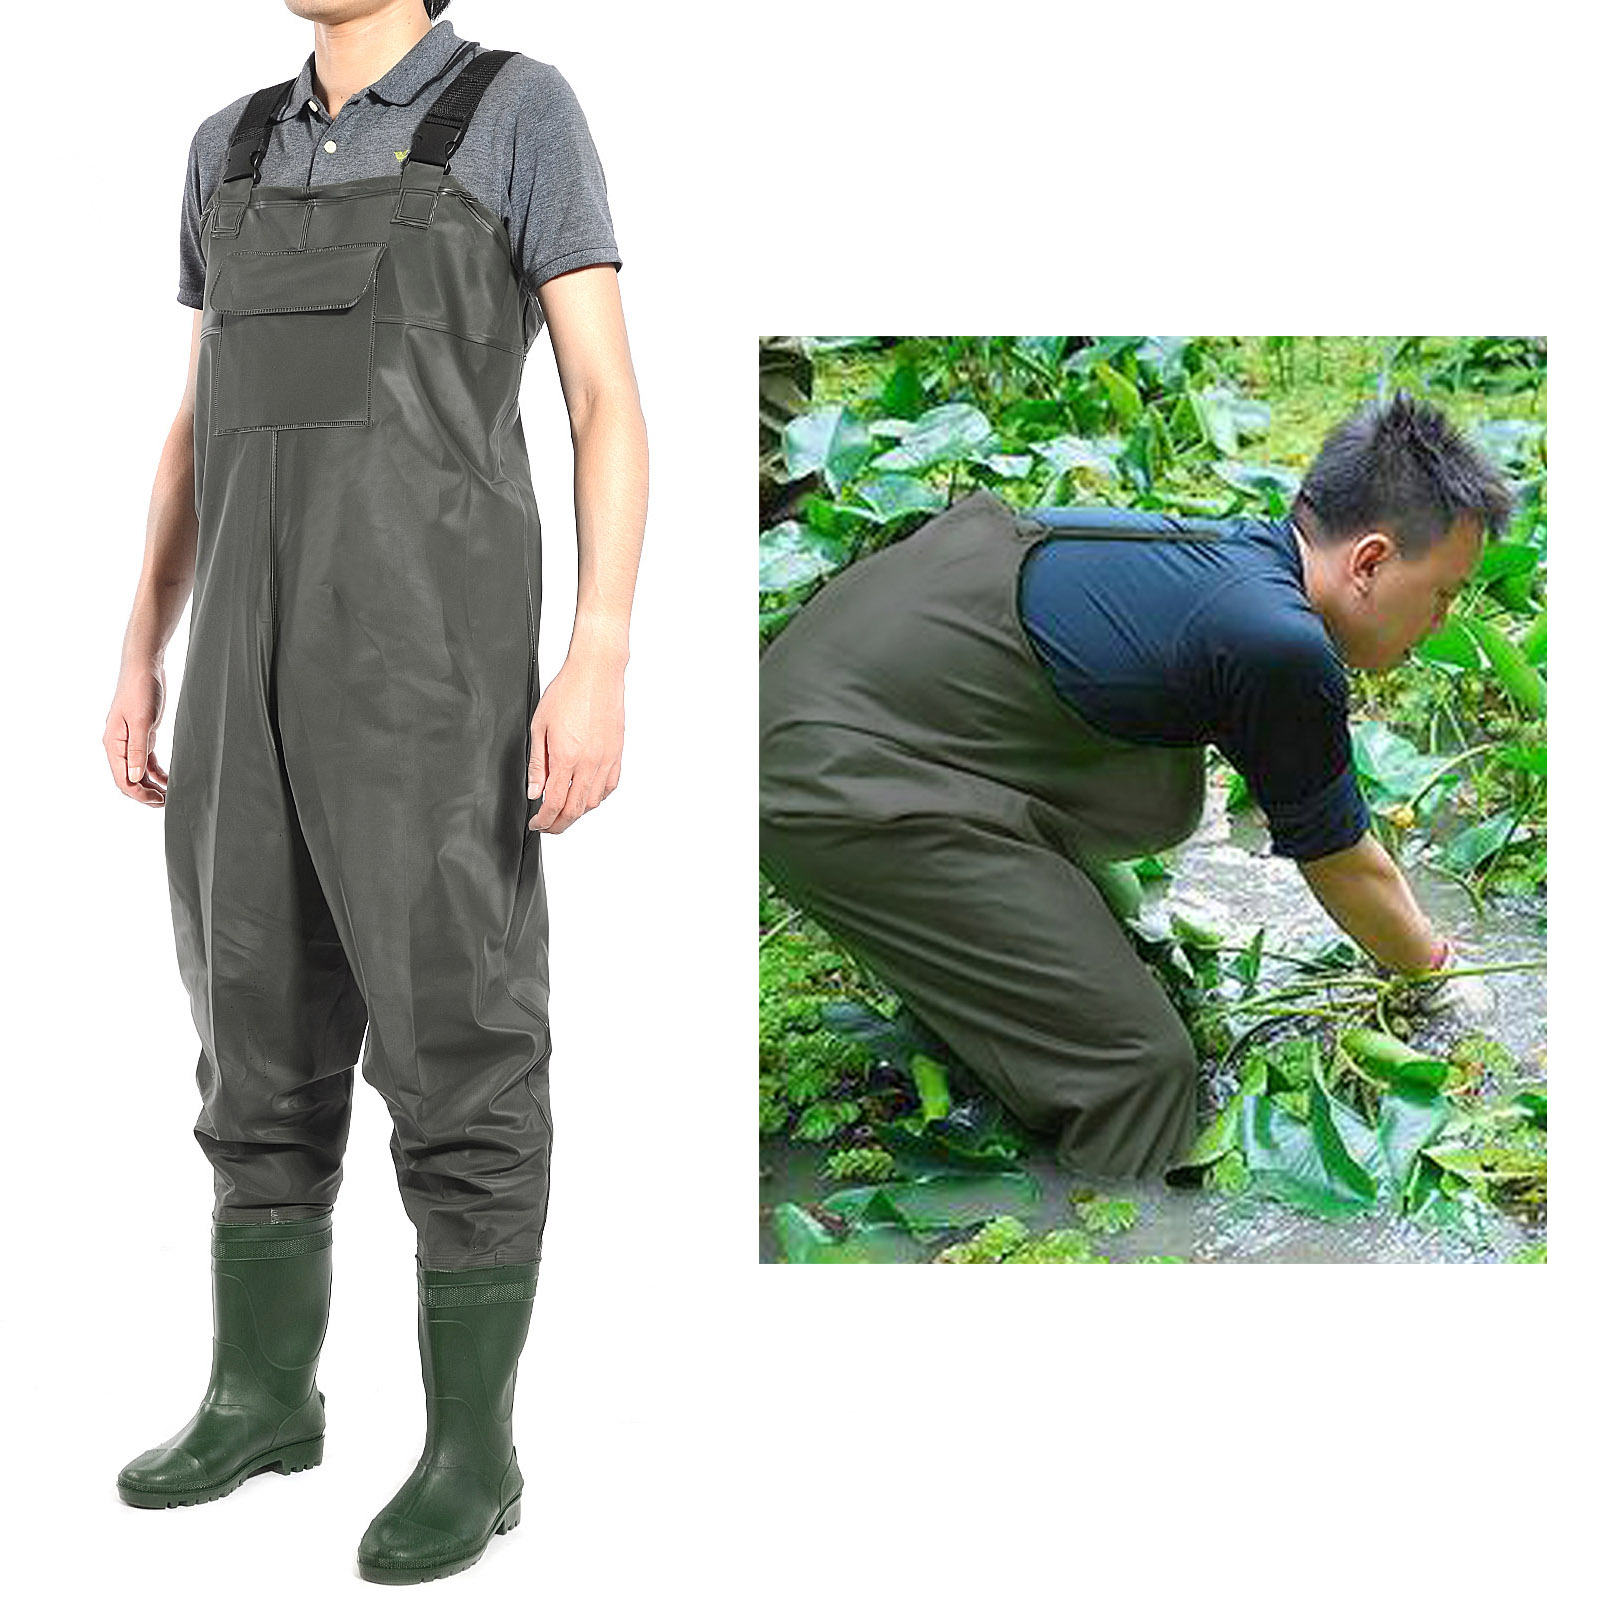 Breathable pvc chest waders 100 waterproof fly coarse for Chest waders for fishing